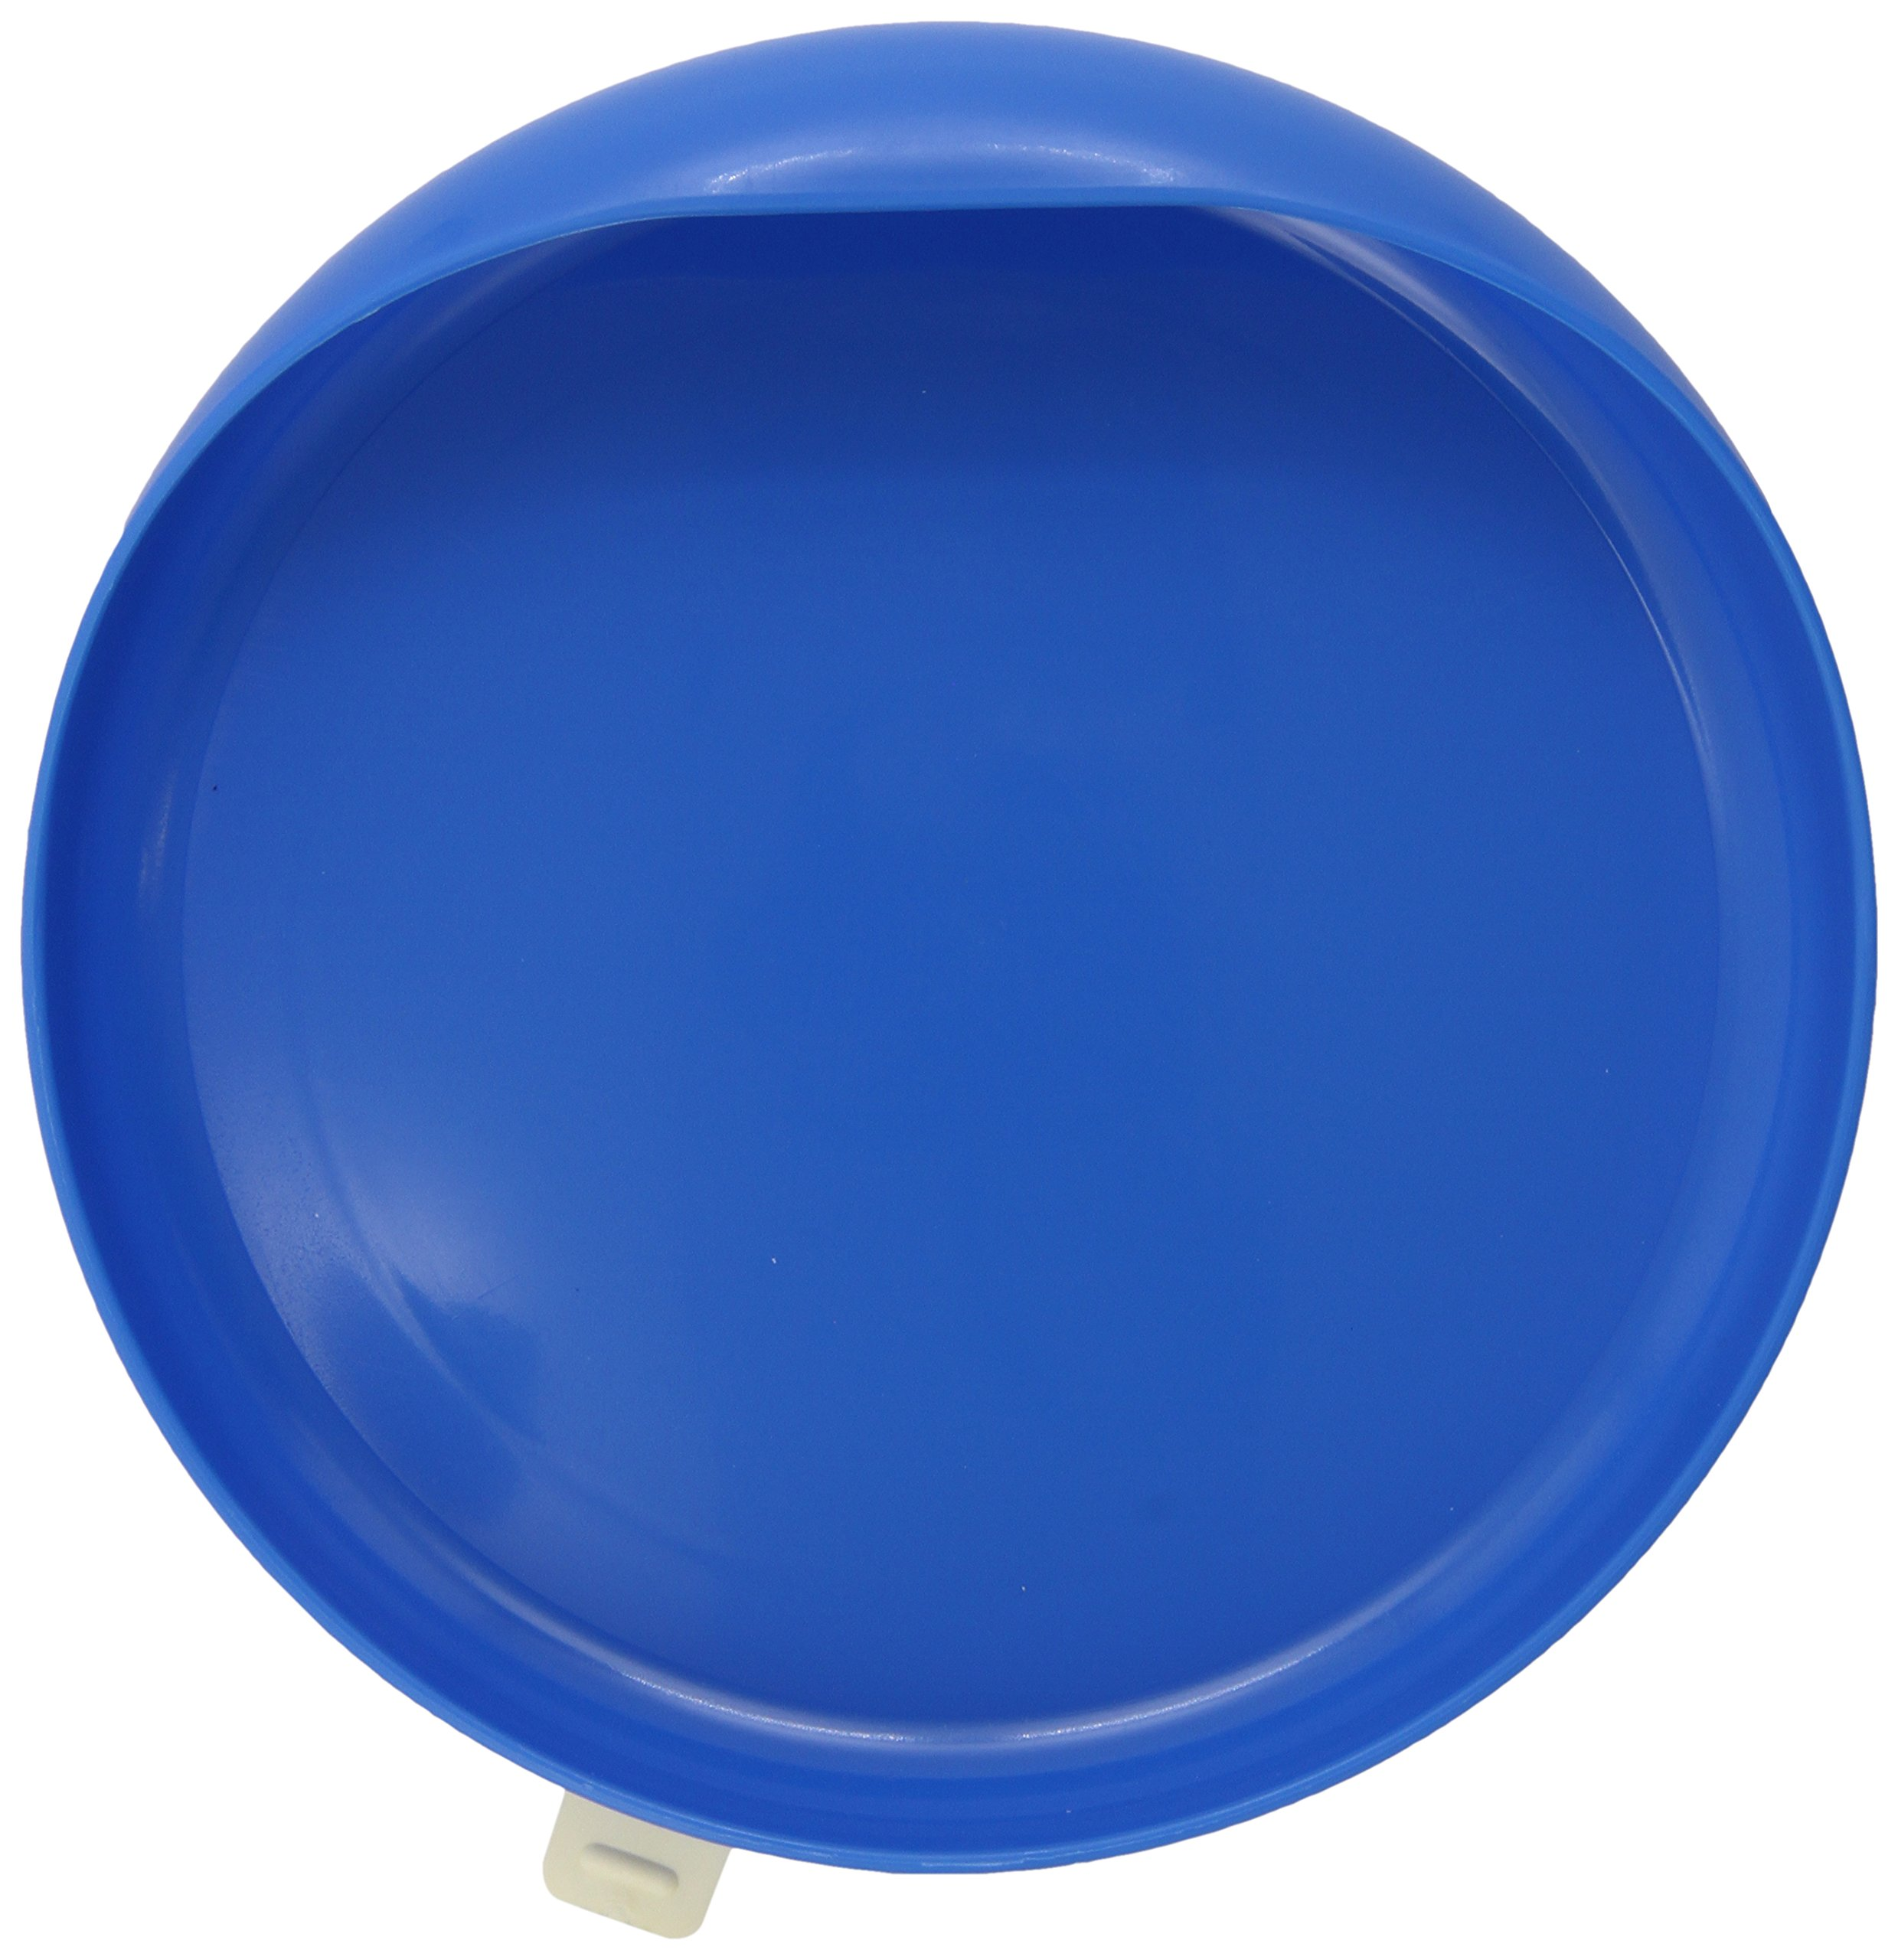 Ableware Scooper Plate with Suction Cup Base, Blue (745350012)